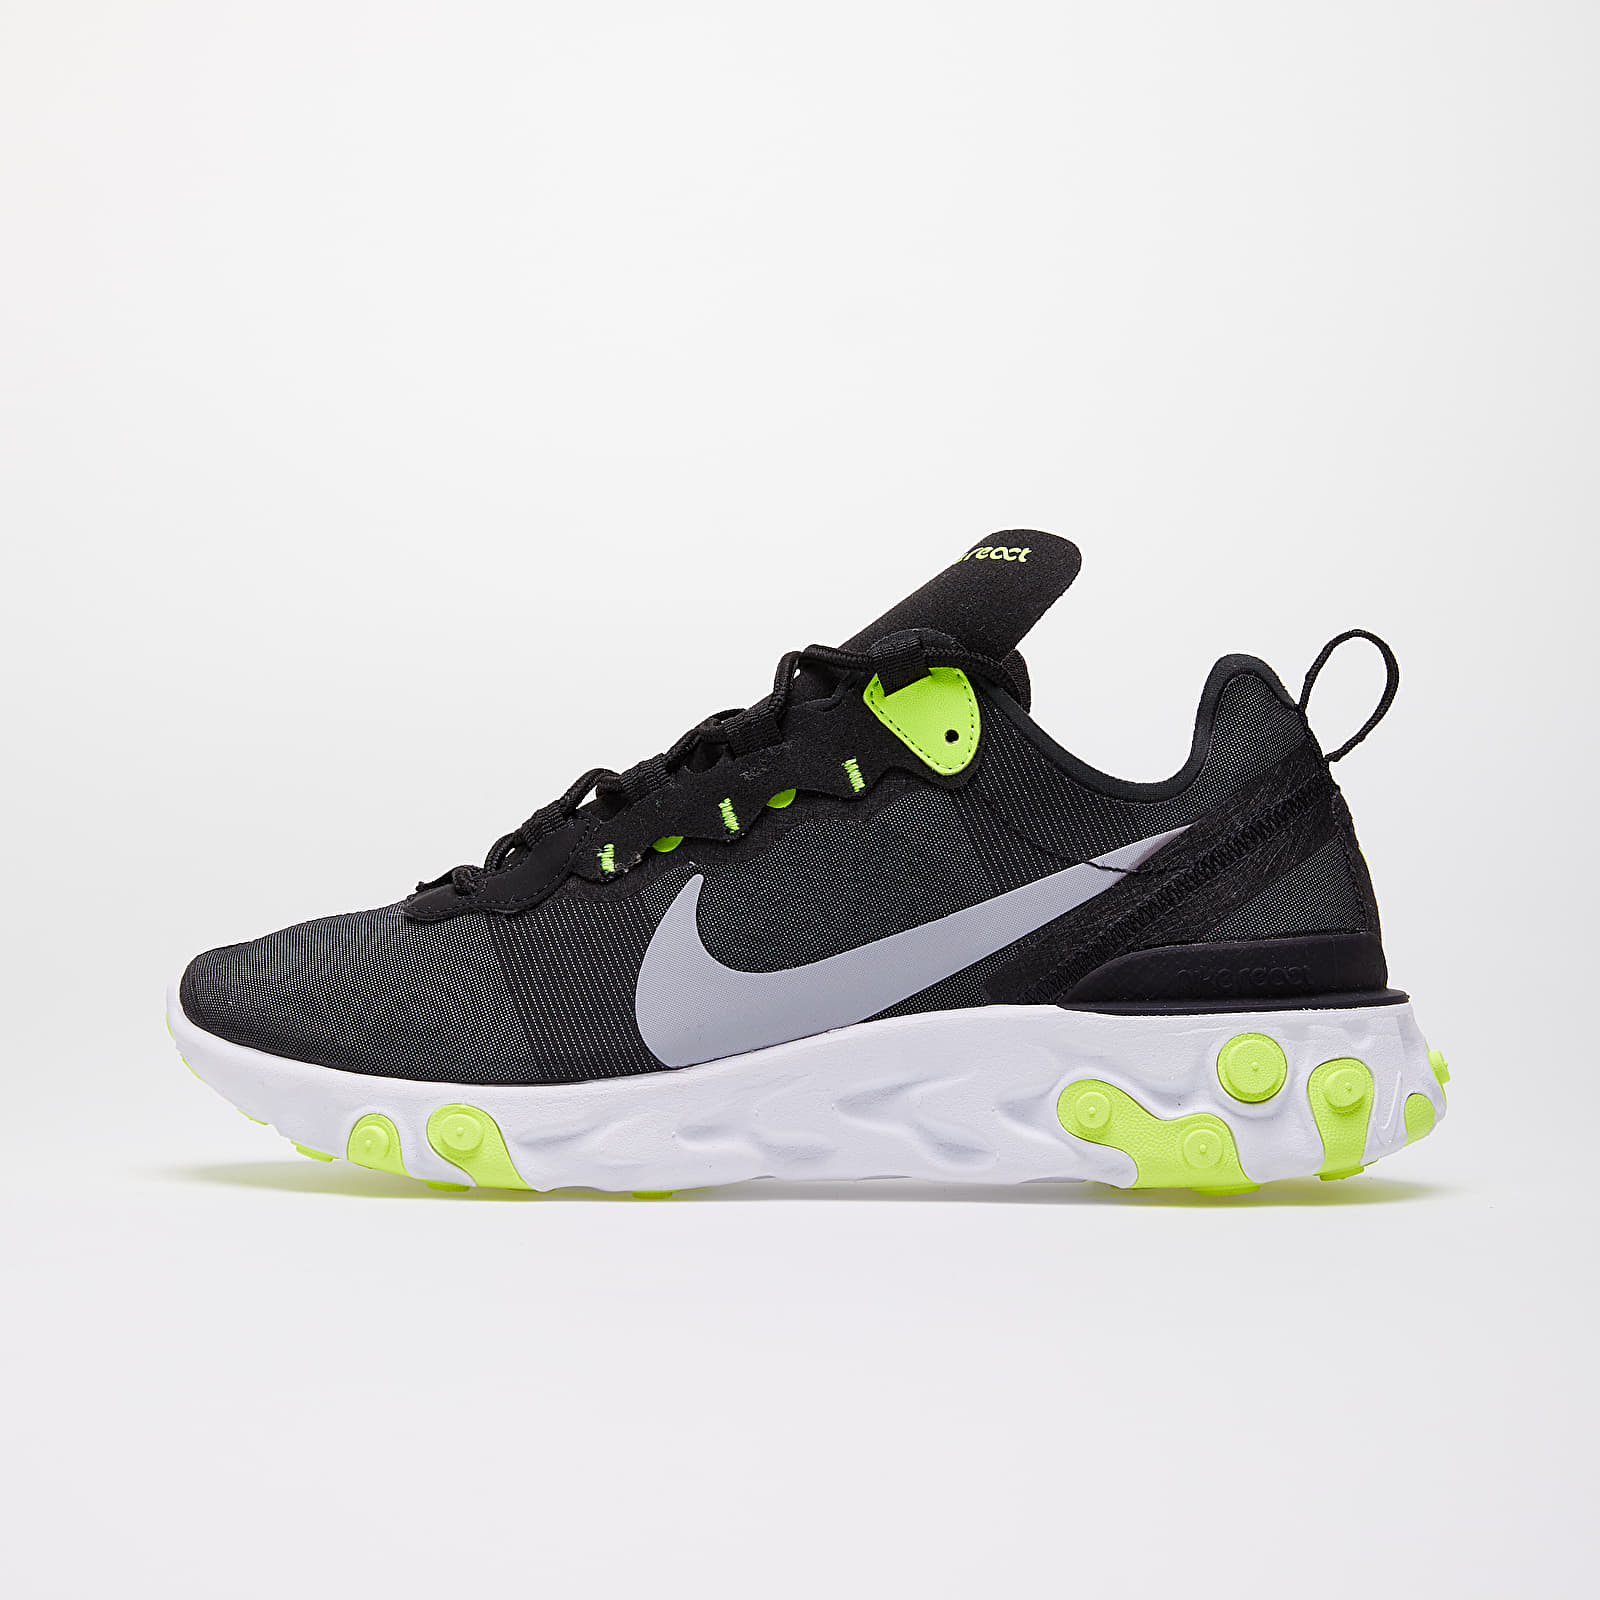 Γυναικεία παπούτσια Nike React Element 55 Wmns Black/ Wolf Grey-Volt-Cool Grey